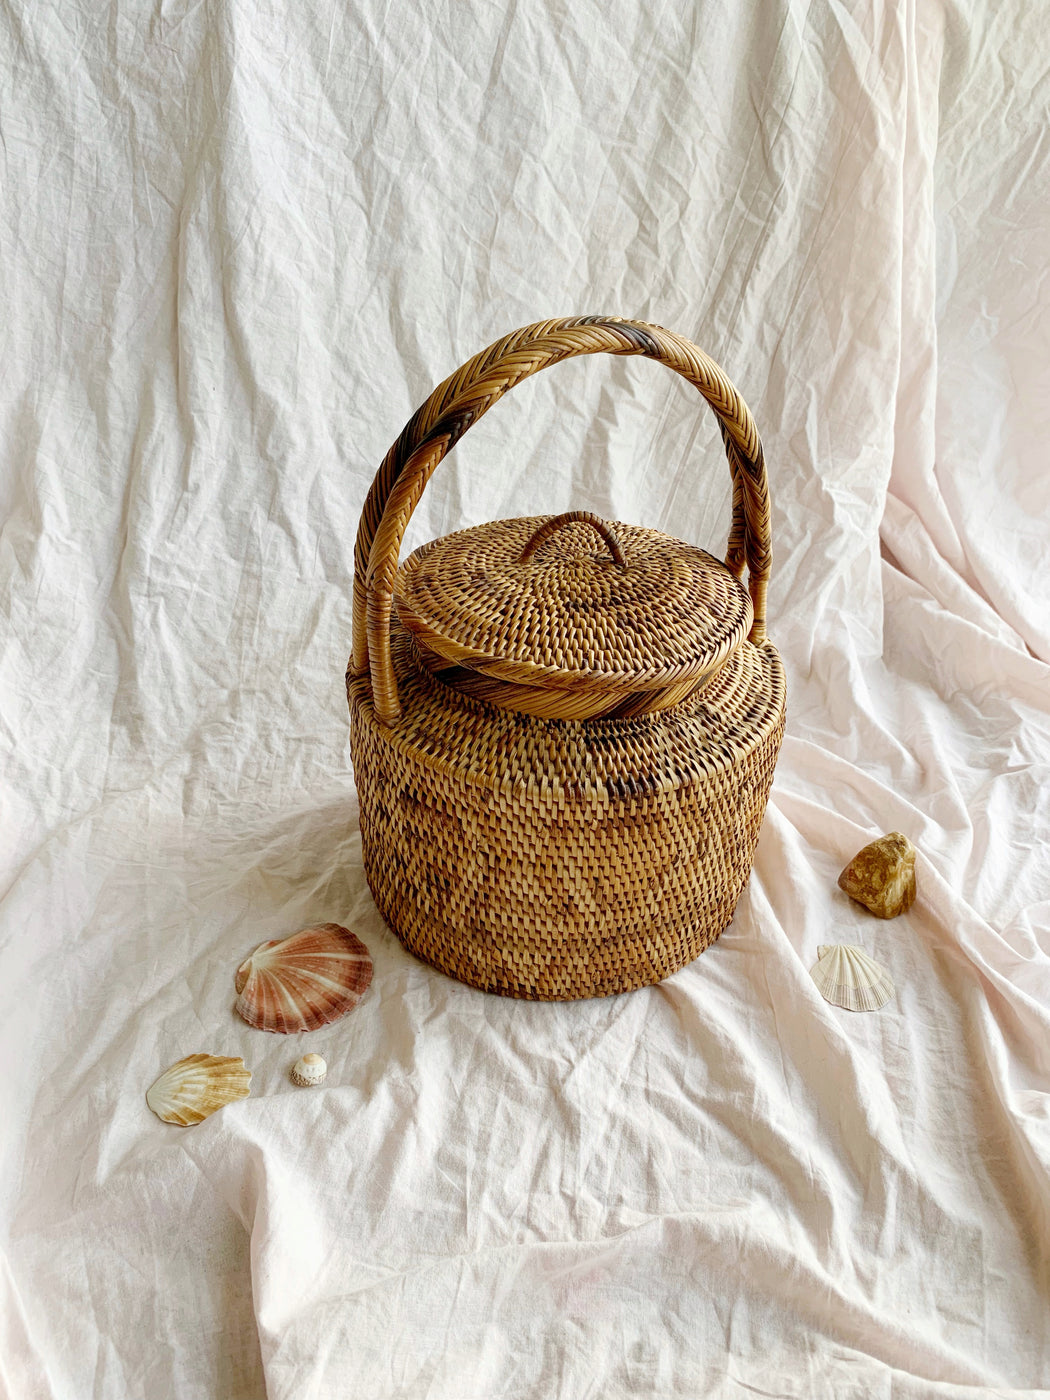 African Woven Basket with Lid and Handle